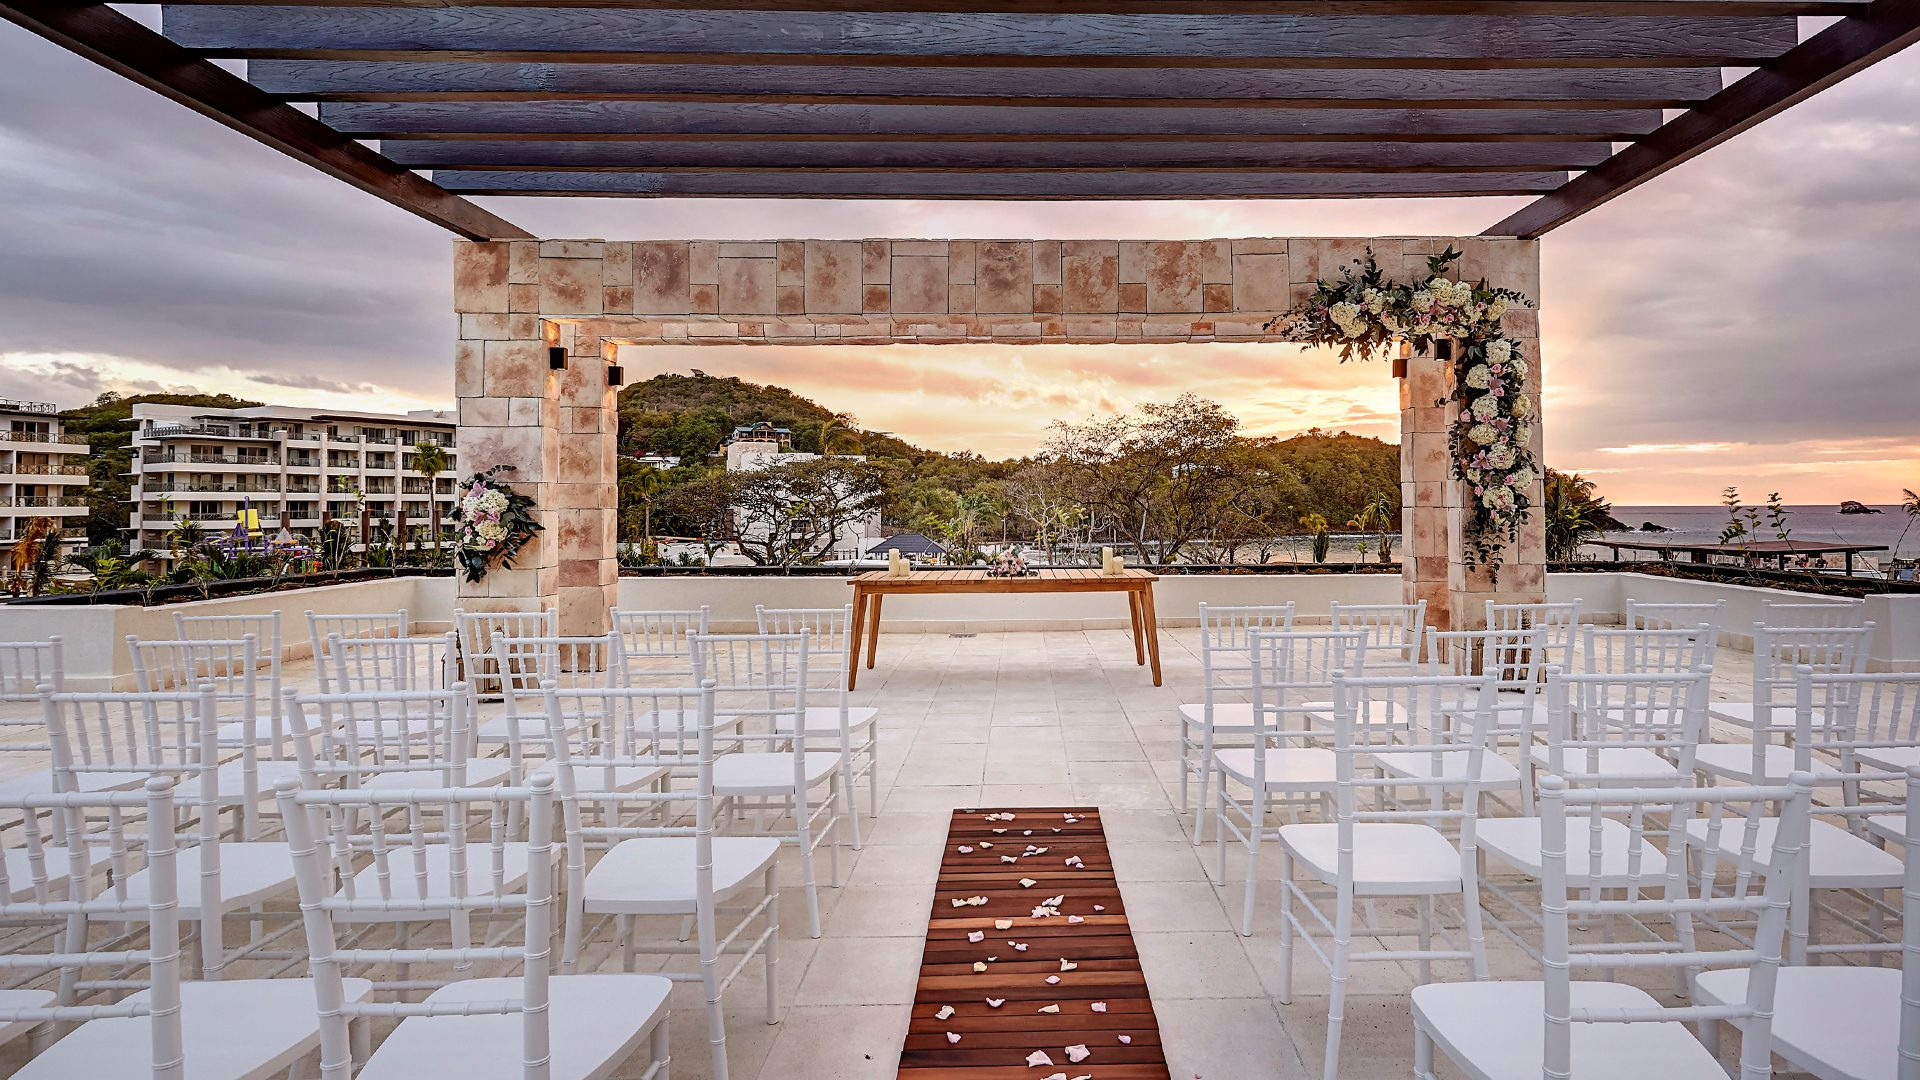 You Can Win A 7night Stay At Any Royalton Luxury Resort Airfare Full Wedding Package Dj Photo Video Dance Floor Private Reception: Wedding Venues St Lucia At Websimilar.org